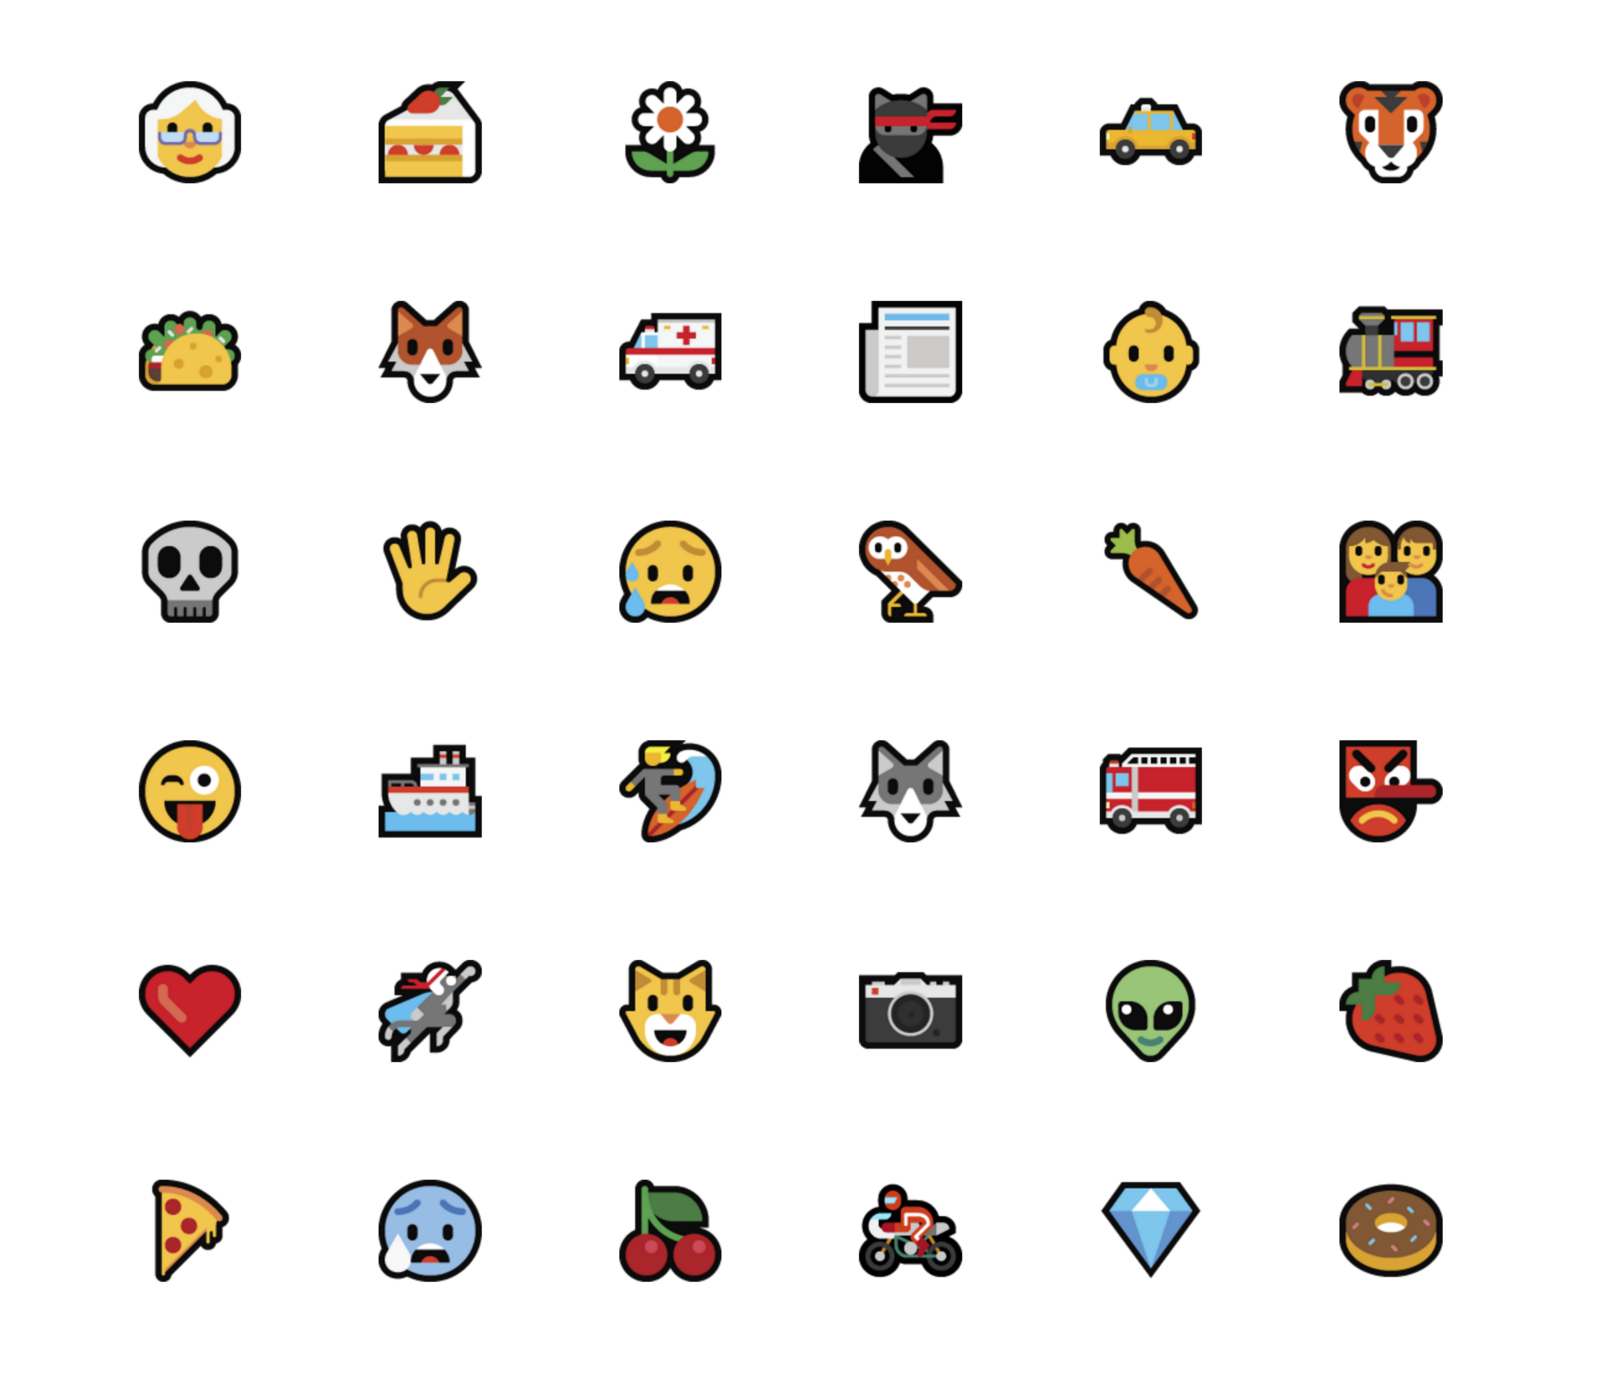 i wanted to sit down and talk with them about their real world experiences in designing emoji for such a big client